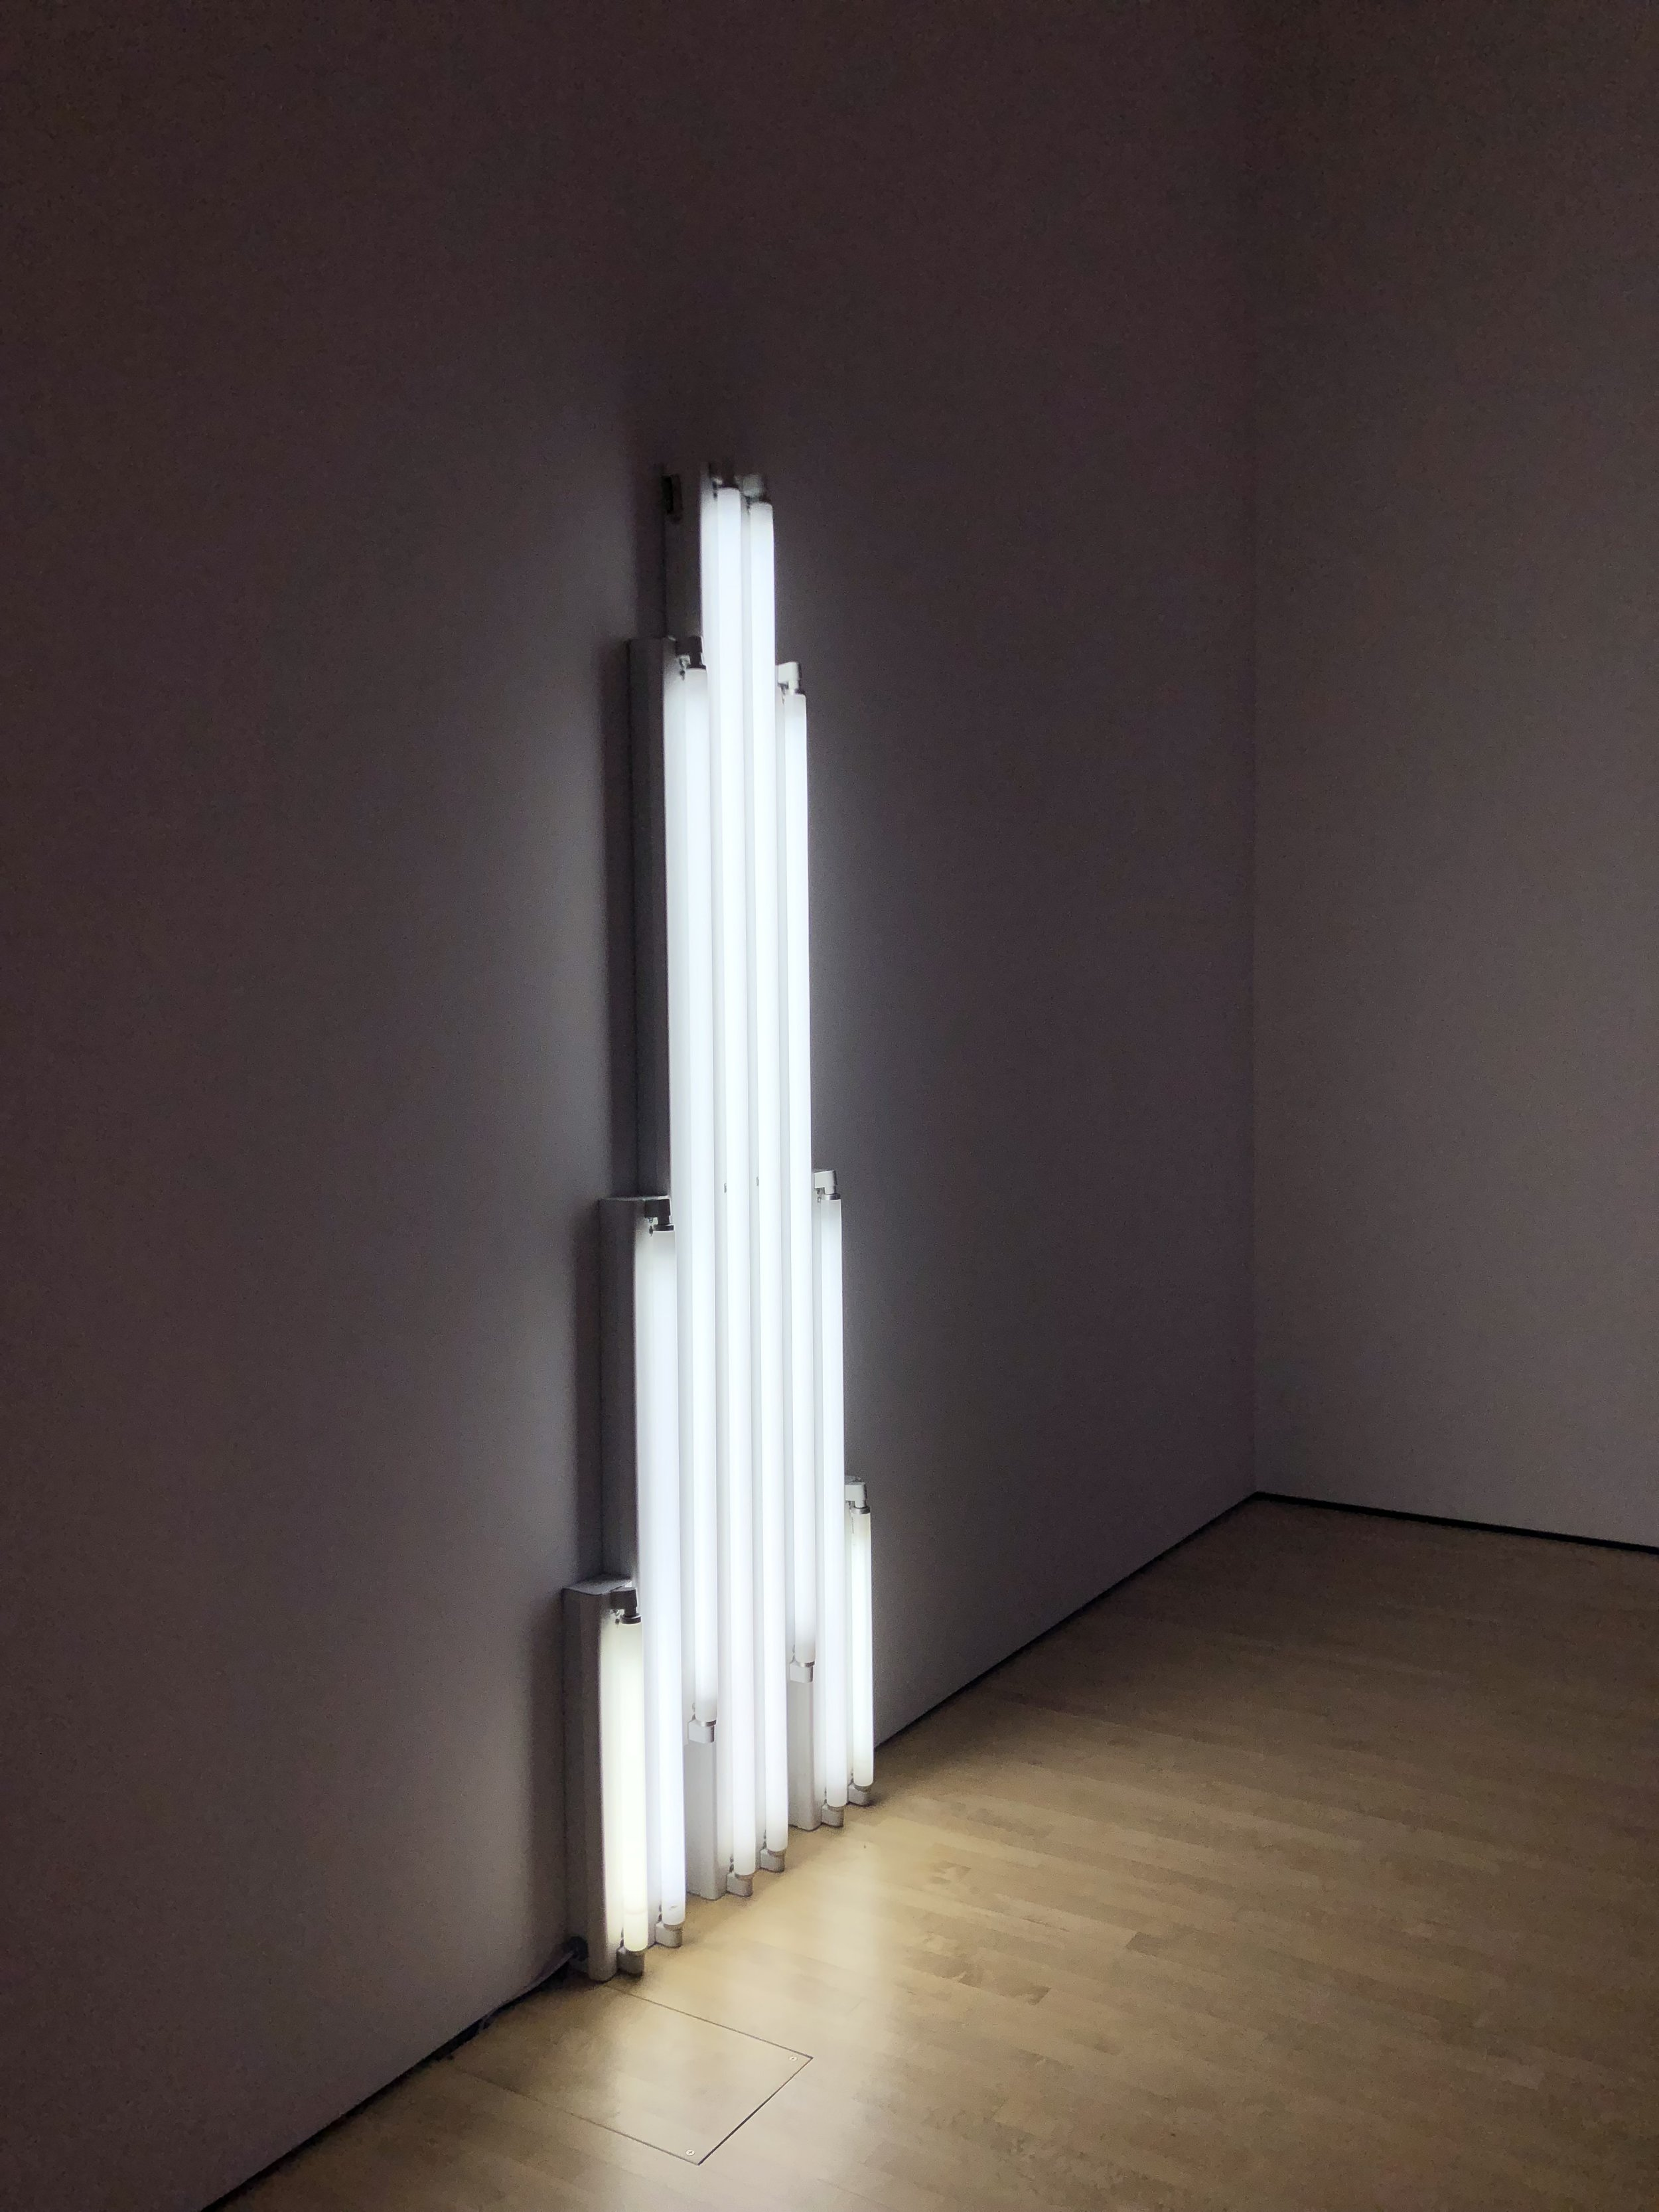 my first time seeing a dan flavin in person!